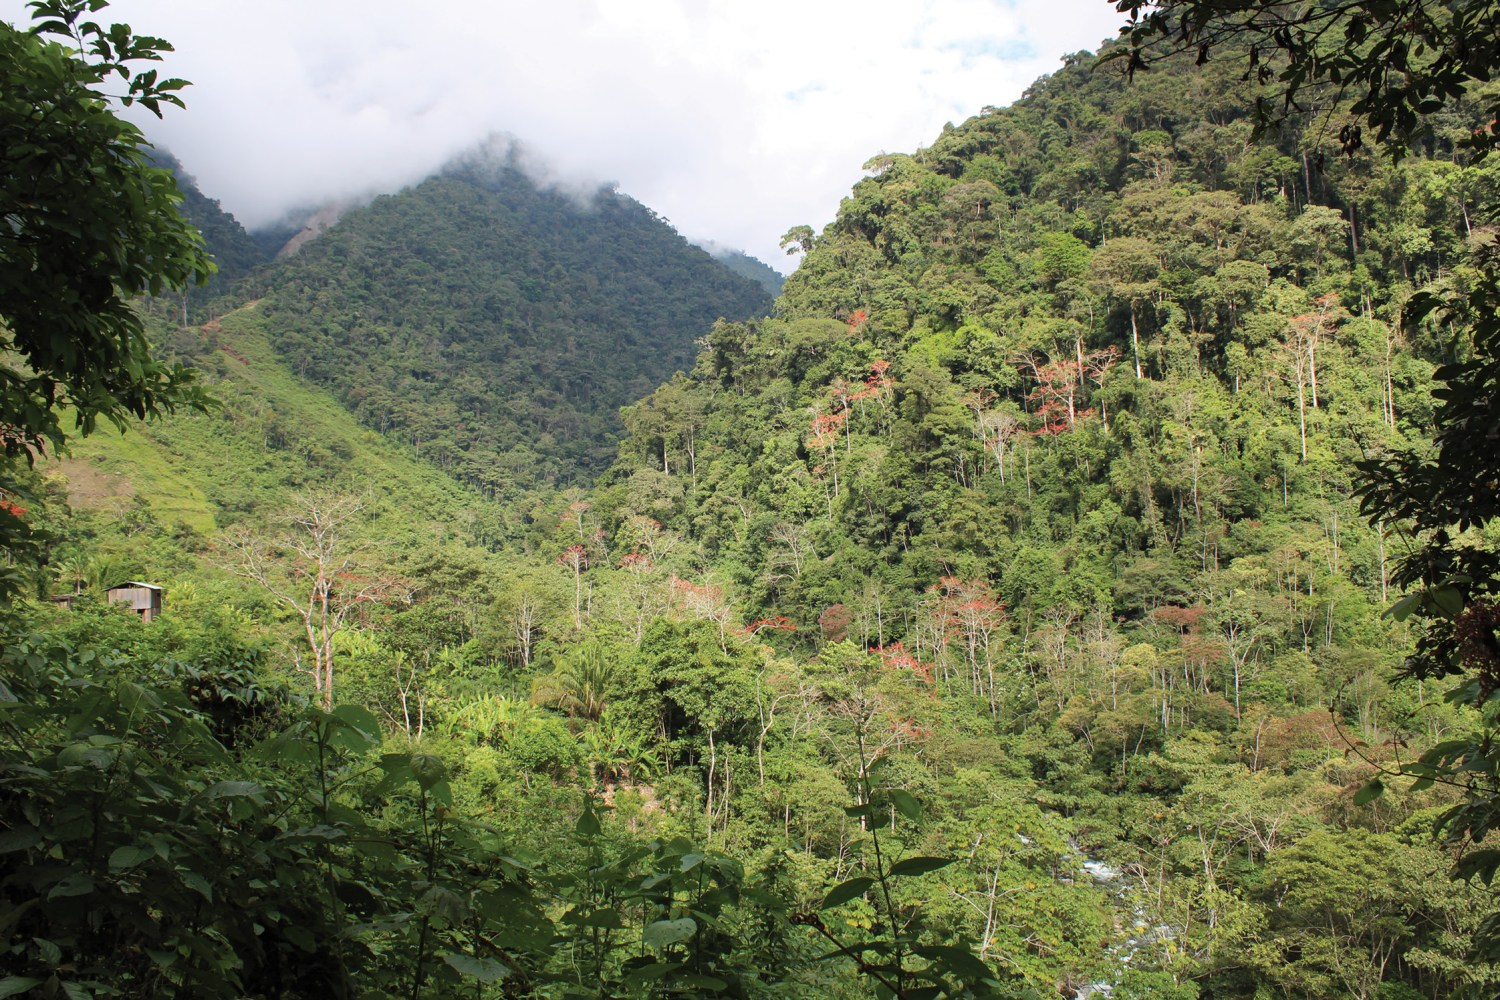 ABOVE The location of Cedrocucho. This photograph shows the steep-sided and heavily vegetated mountain where ruins were recently encountered during forest-clearance work (location circled in red). BELOW This 1m-wide wall seems to mark the lower eastern boundary of the site. At one end, it connects to a cliff, while at the other it reportedly reaches a ravine.